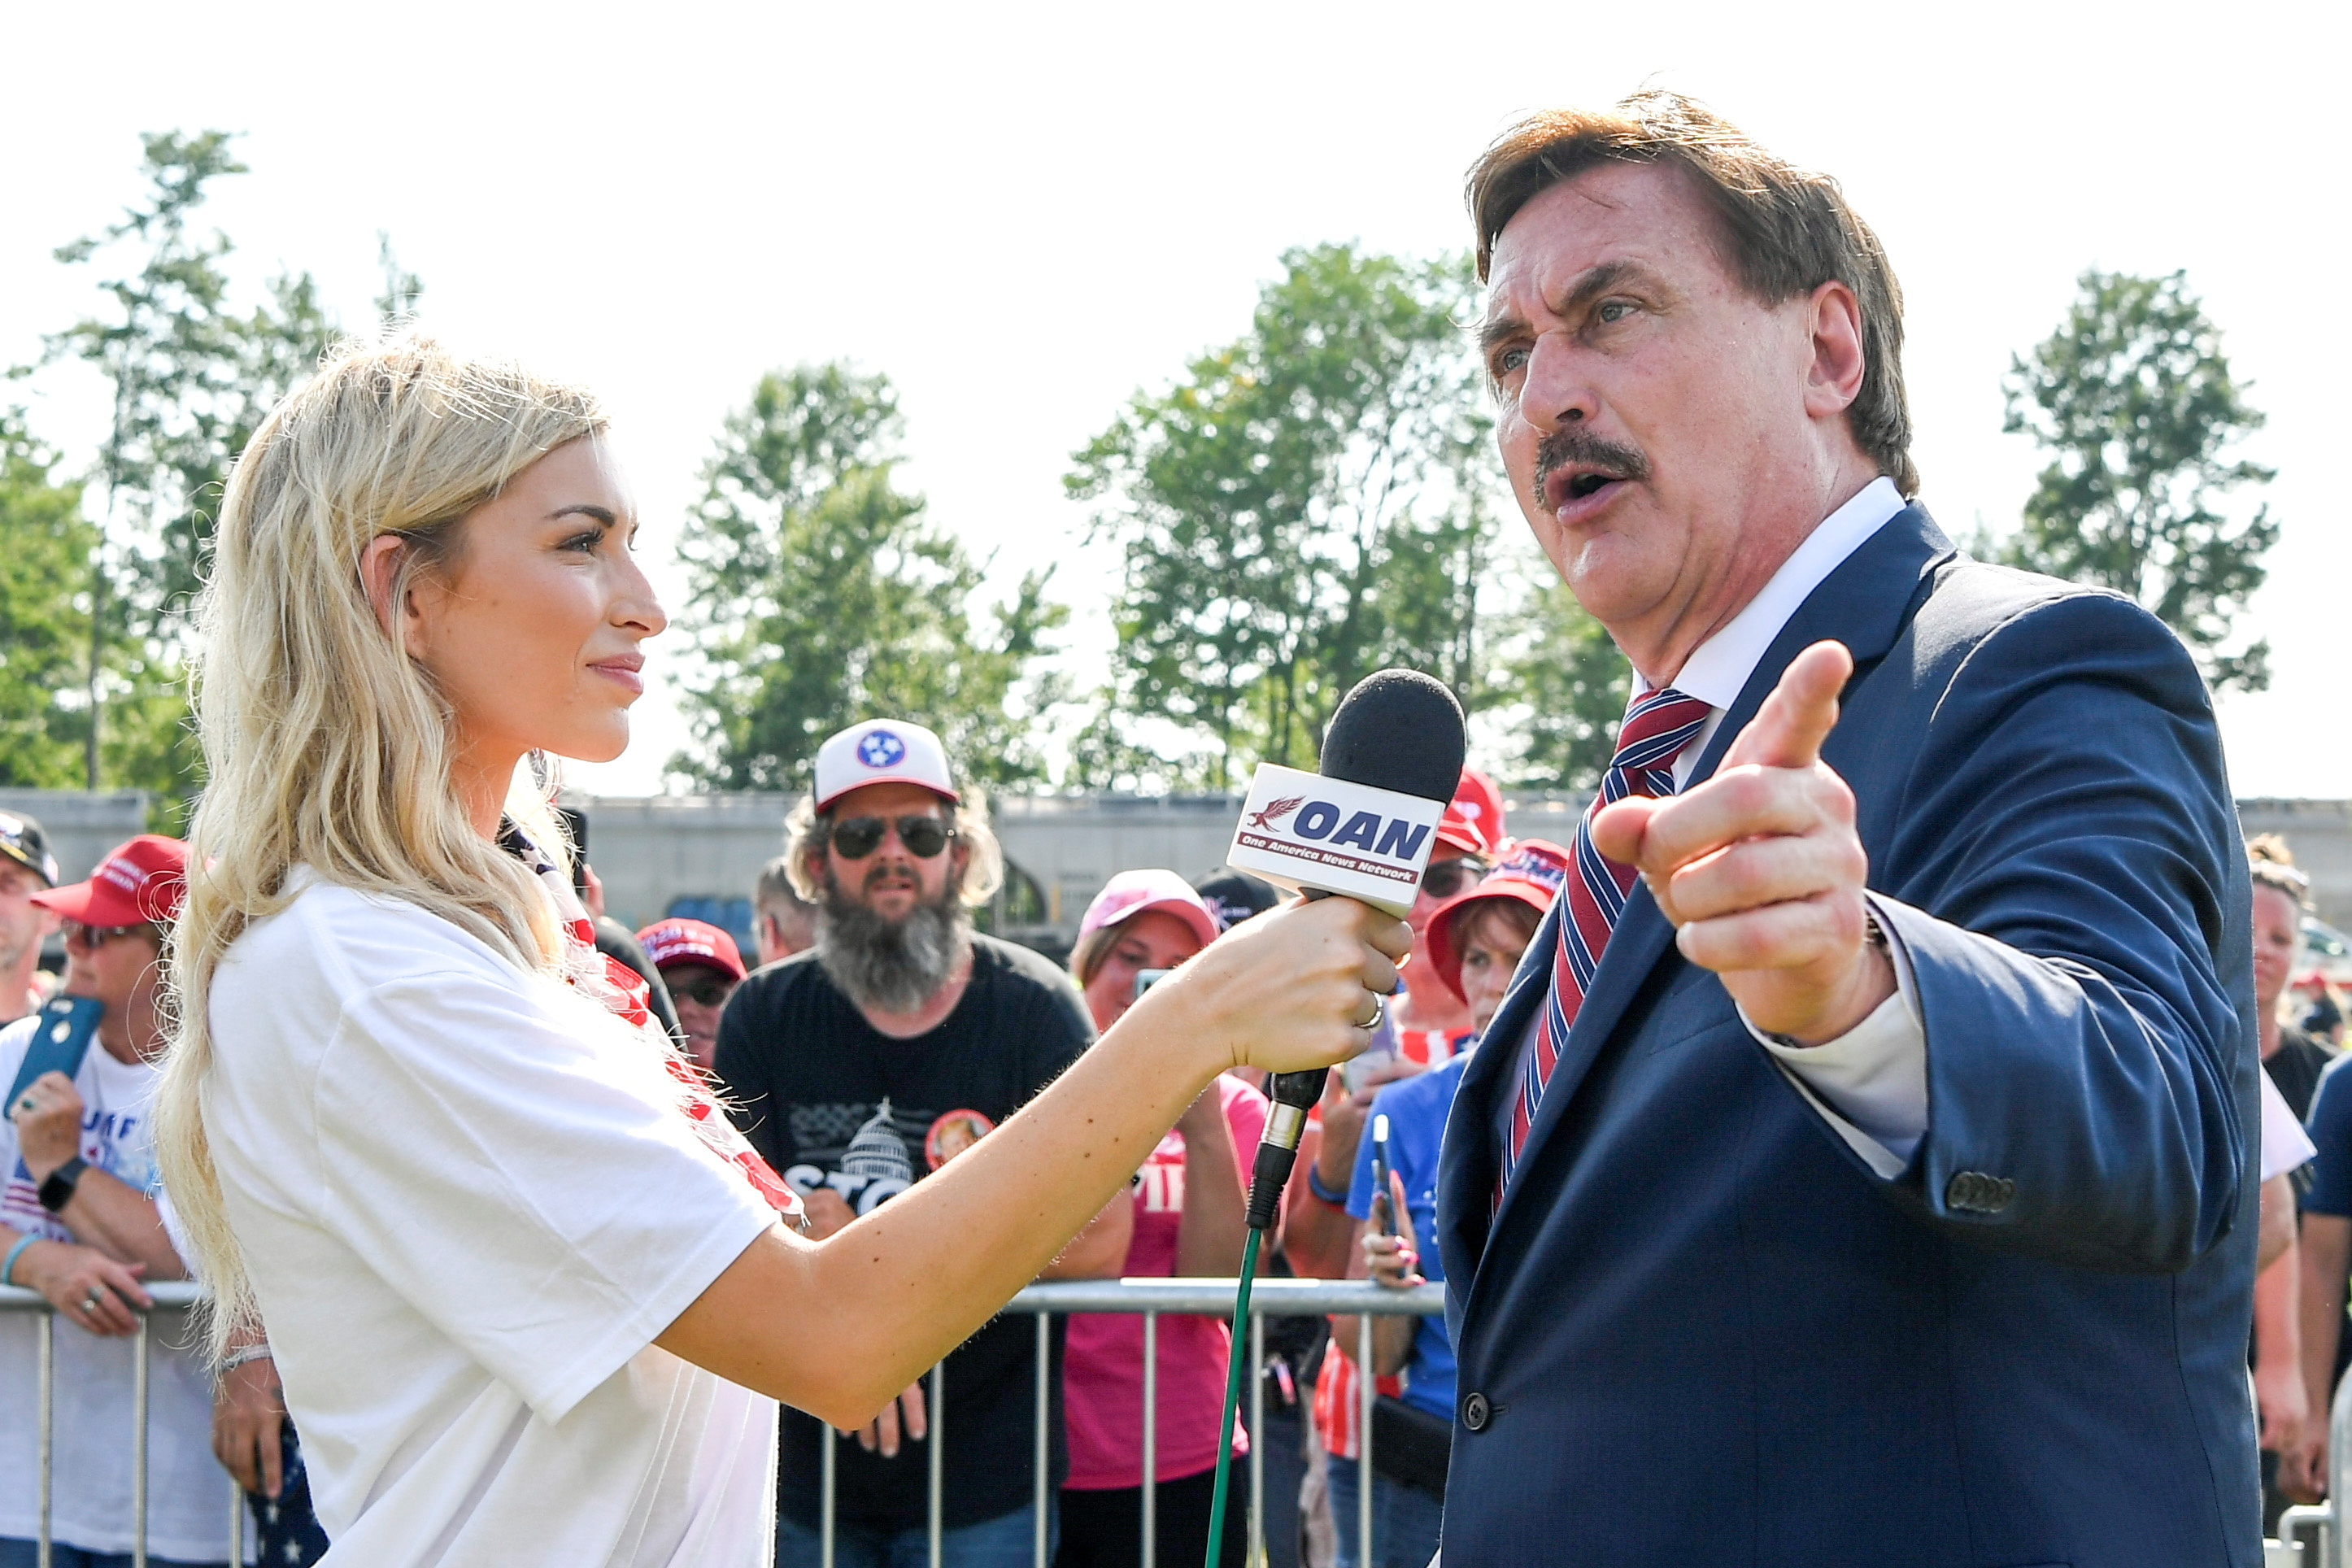 MyPillow CEO Mike Lindell is interviewed by the One America News Network during former U.S. president Donald Trump's rally at the Lorain County Fairgrounds in Wellington, Ohio, U.S., June 26, 2021.  REUTERS/Gaelen Morse/File Photo